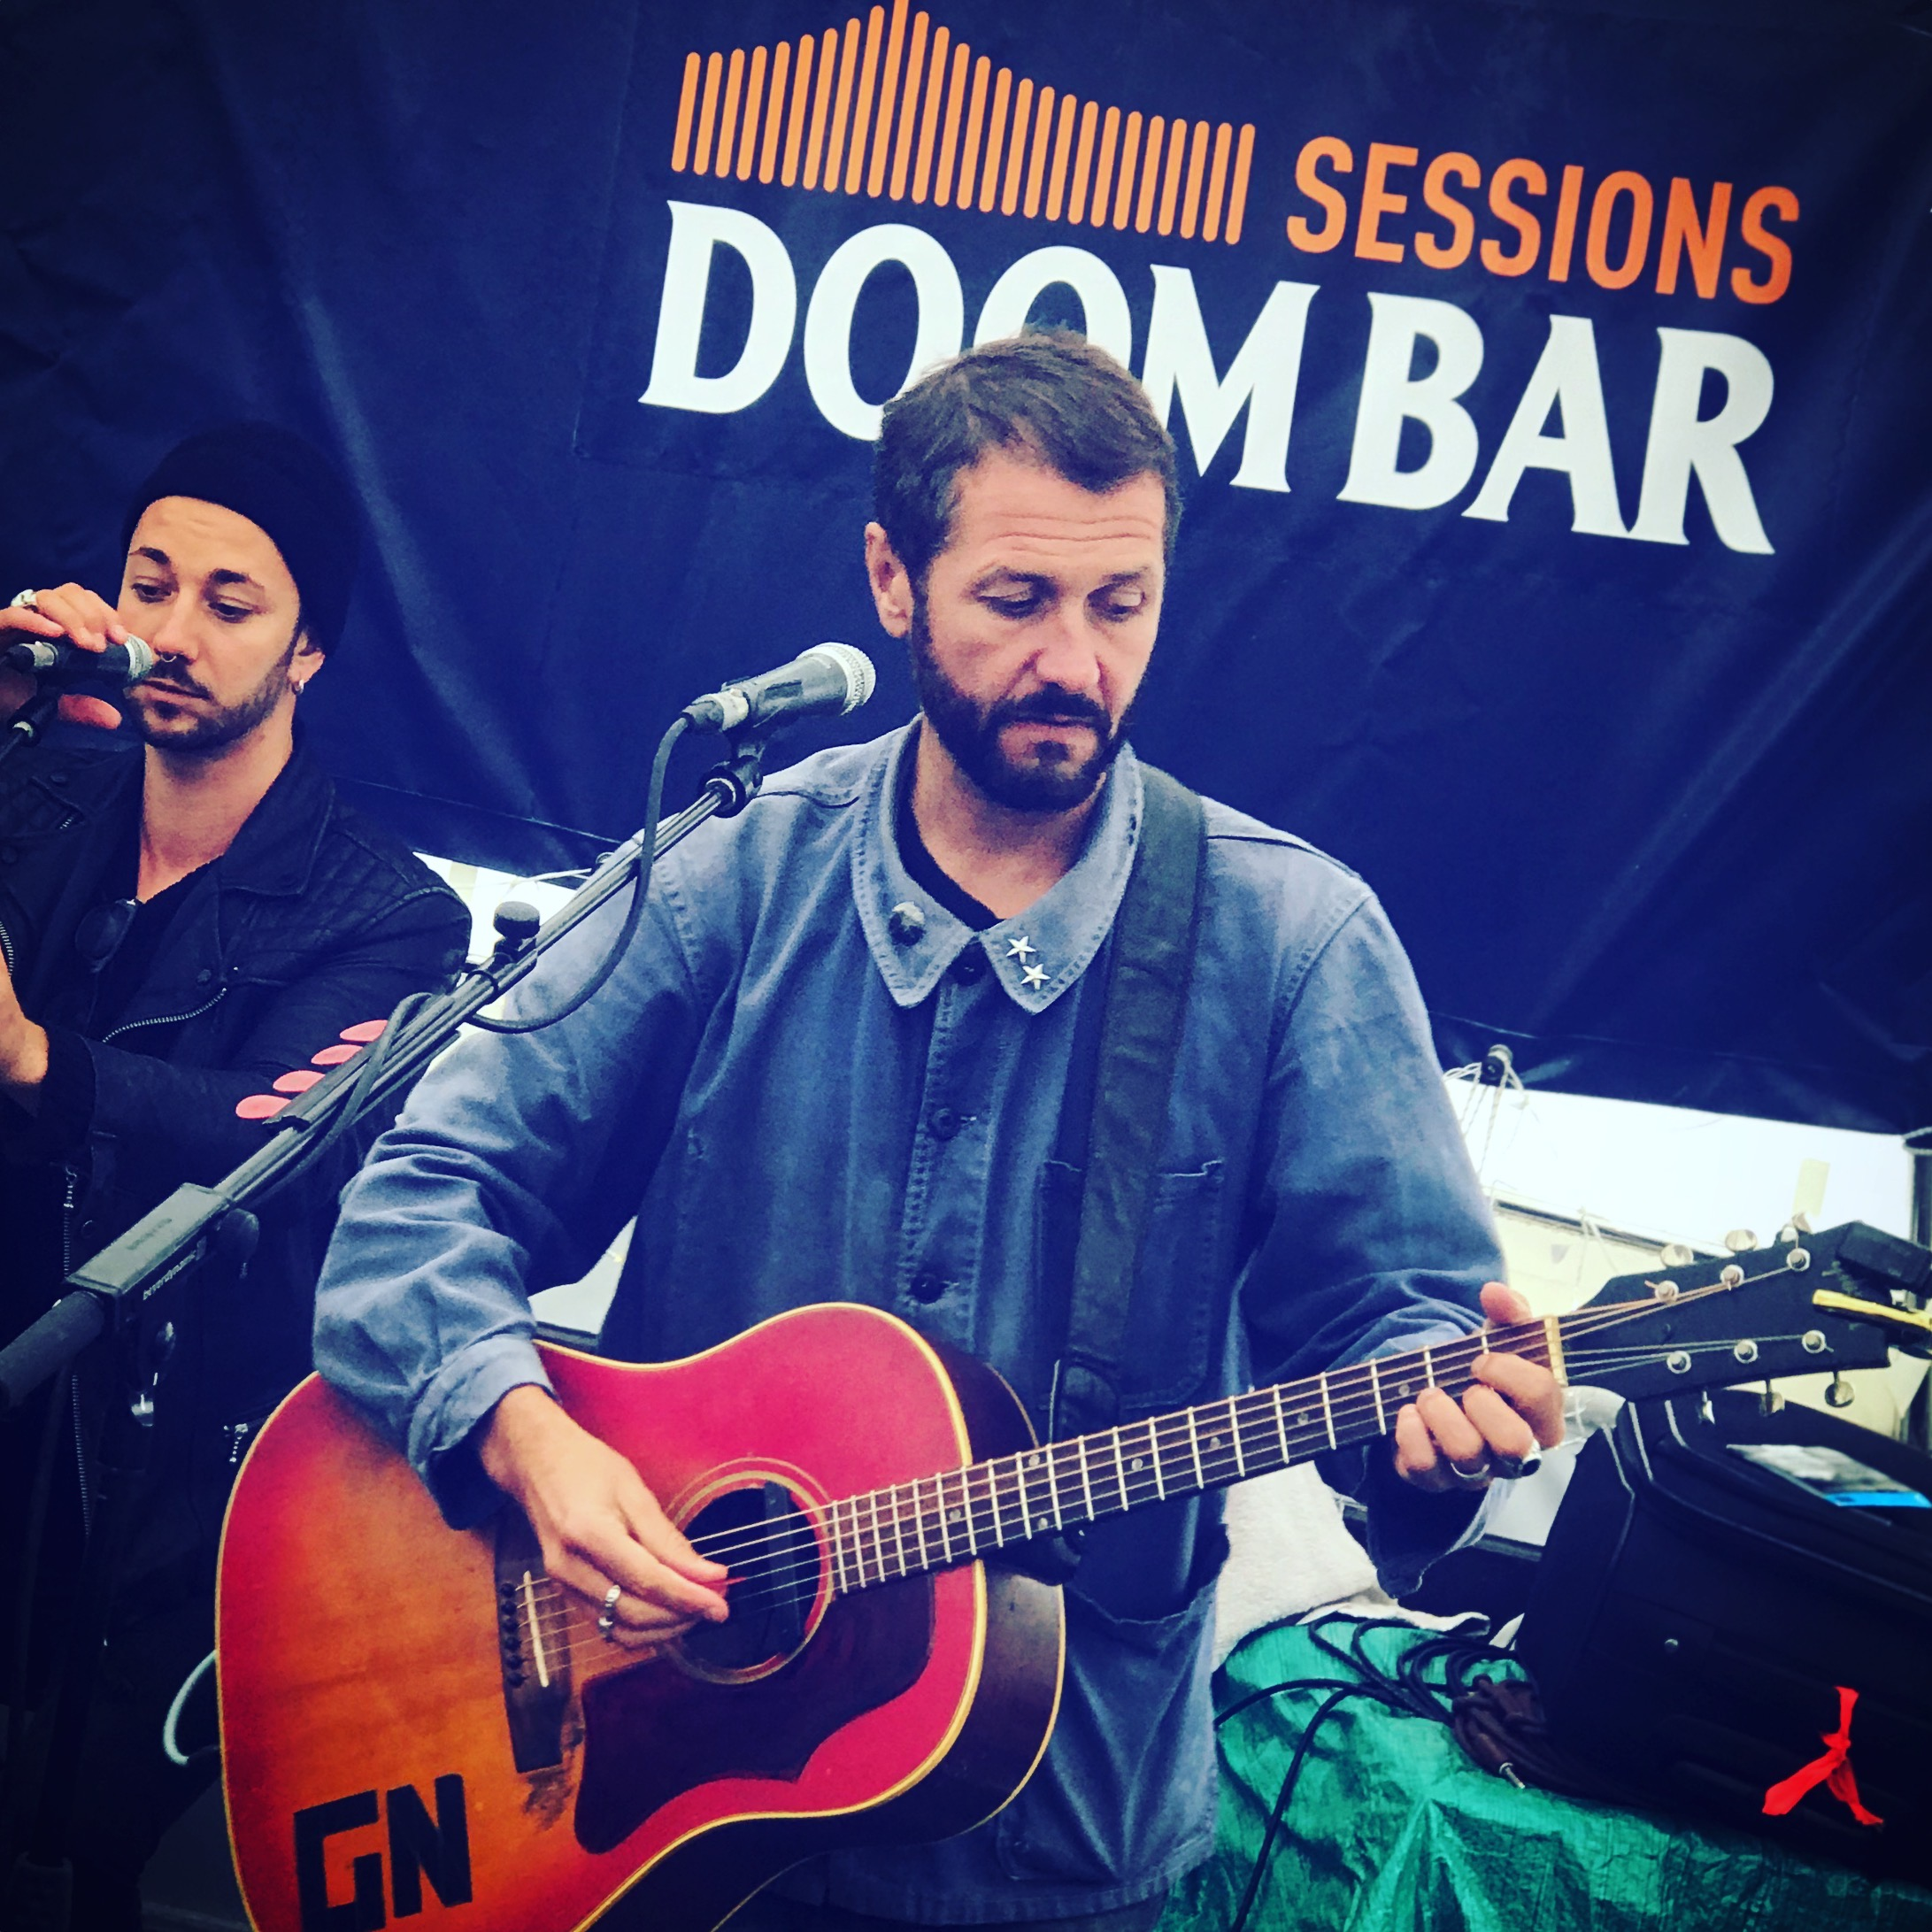 DoomBar Sessions live onboard!